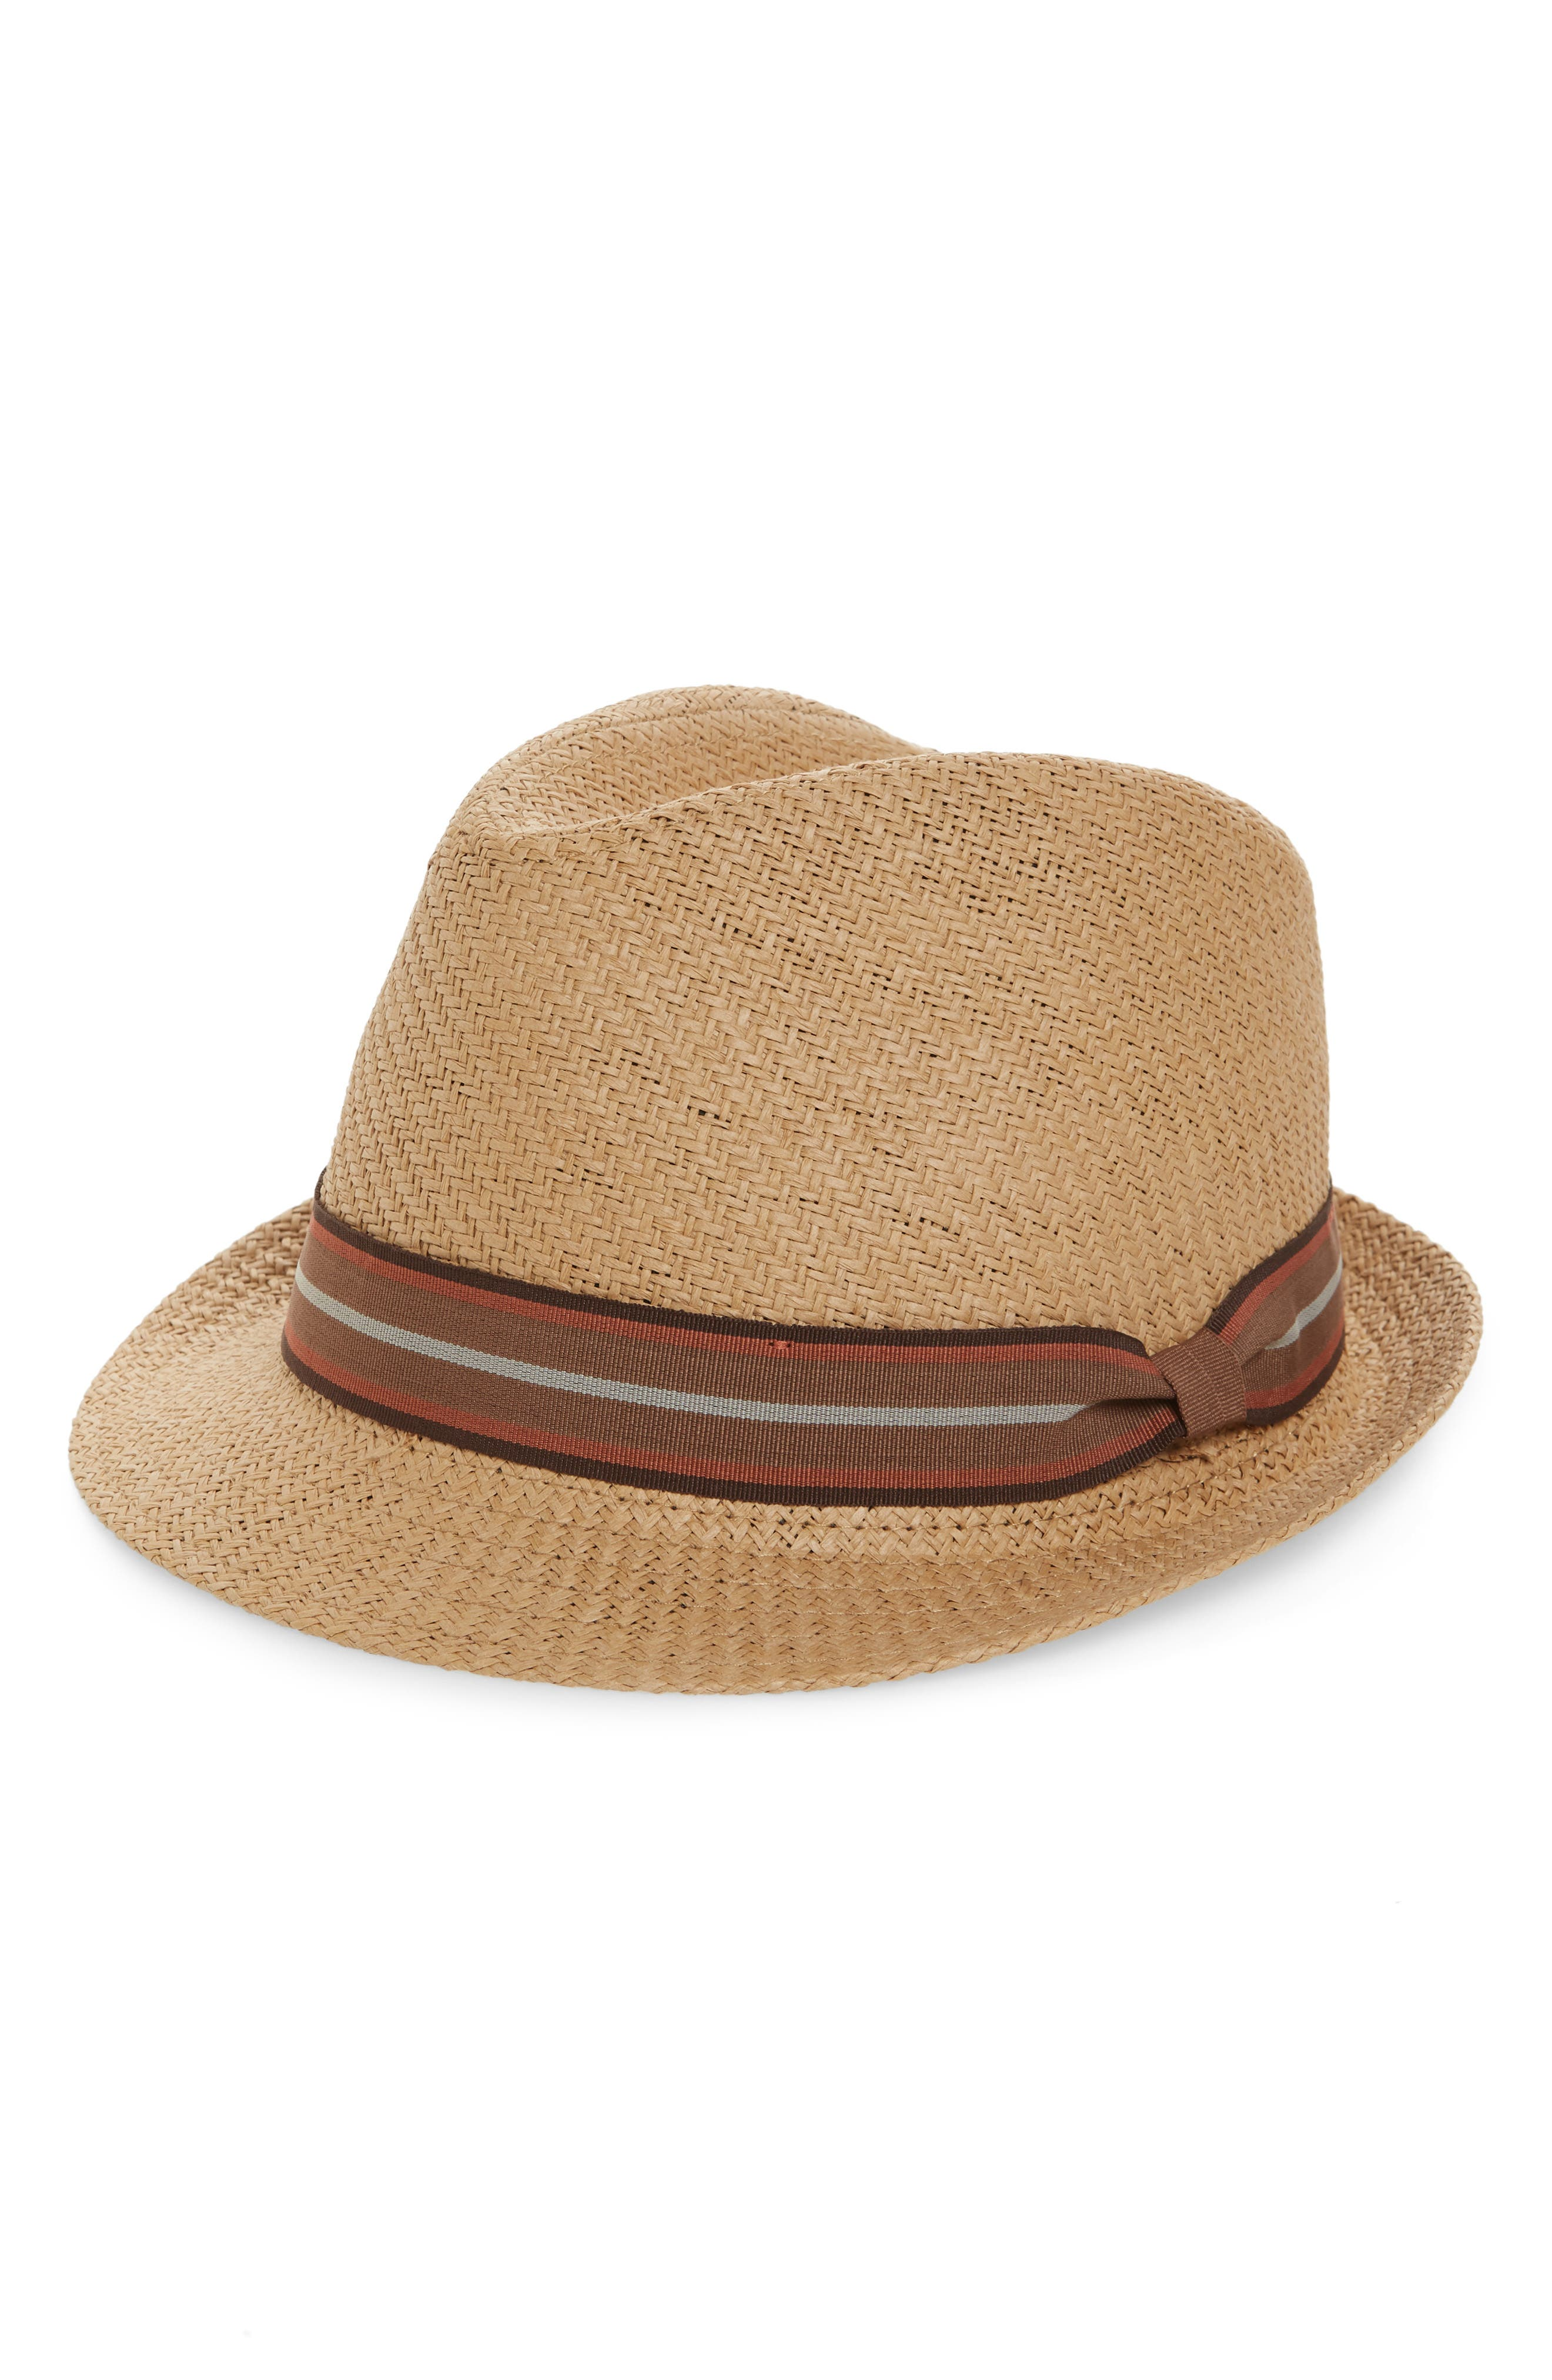 Goorin Bros. Killian Fedora -